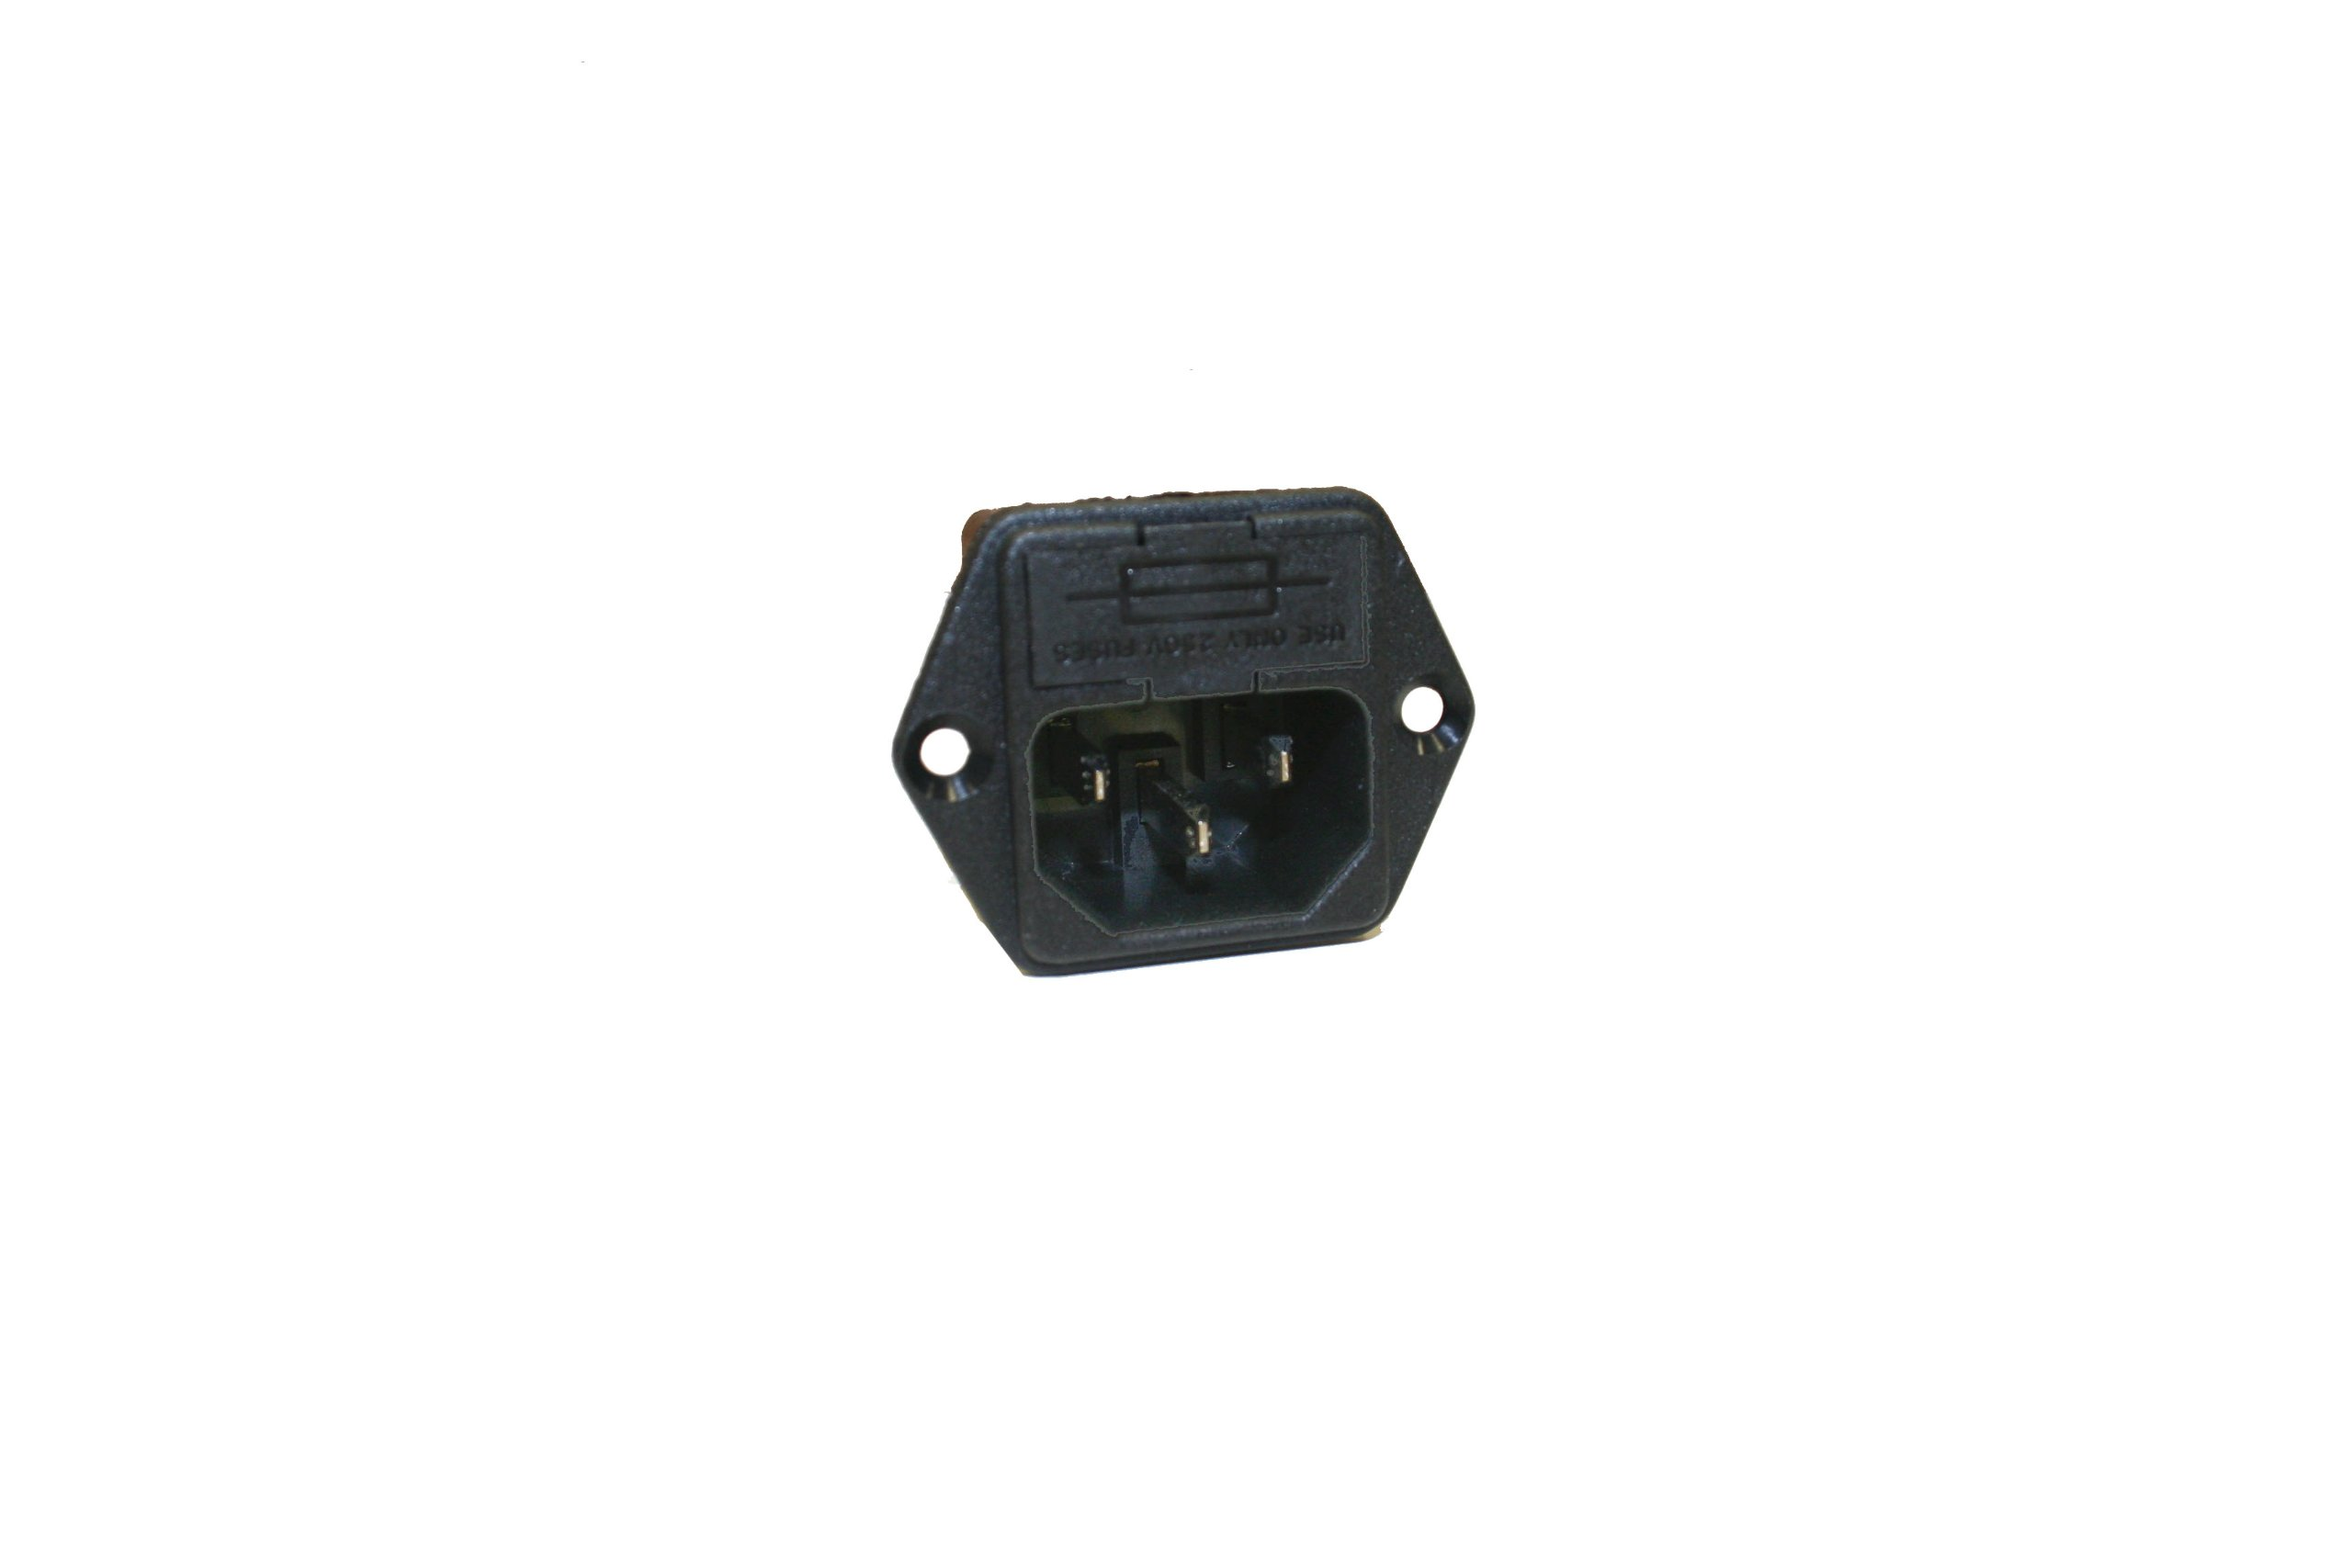 Interpower 83110111 Two Function Single Fused Power Entry Module, C14 Inlet, Single Fused, 10A Current Rating, 250VAC Voltage Rating